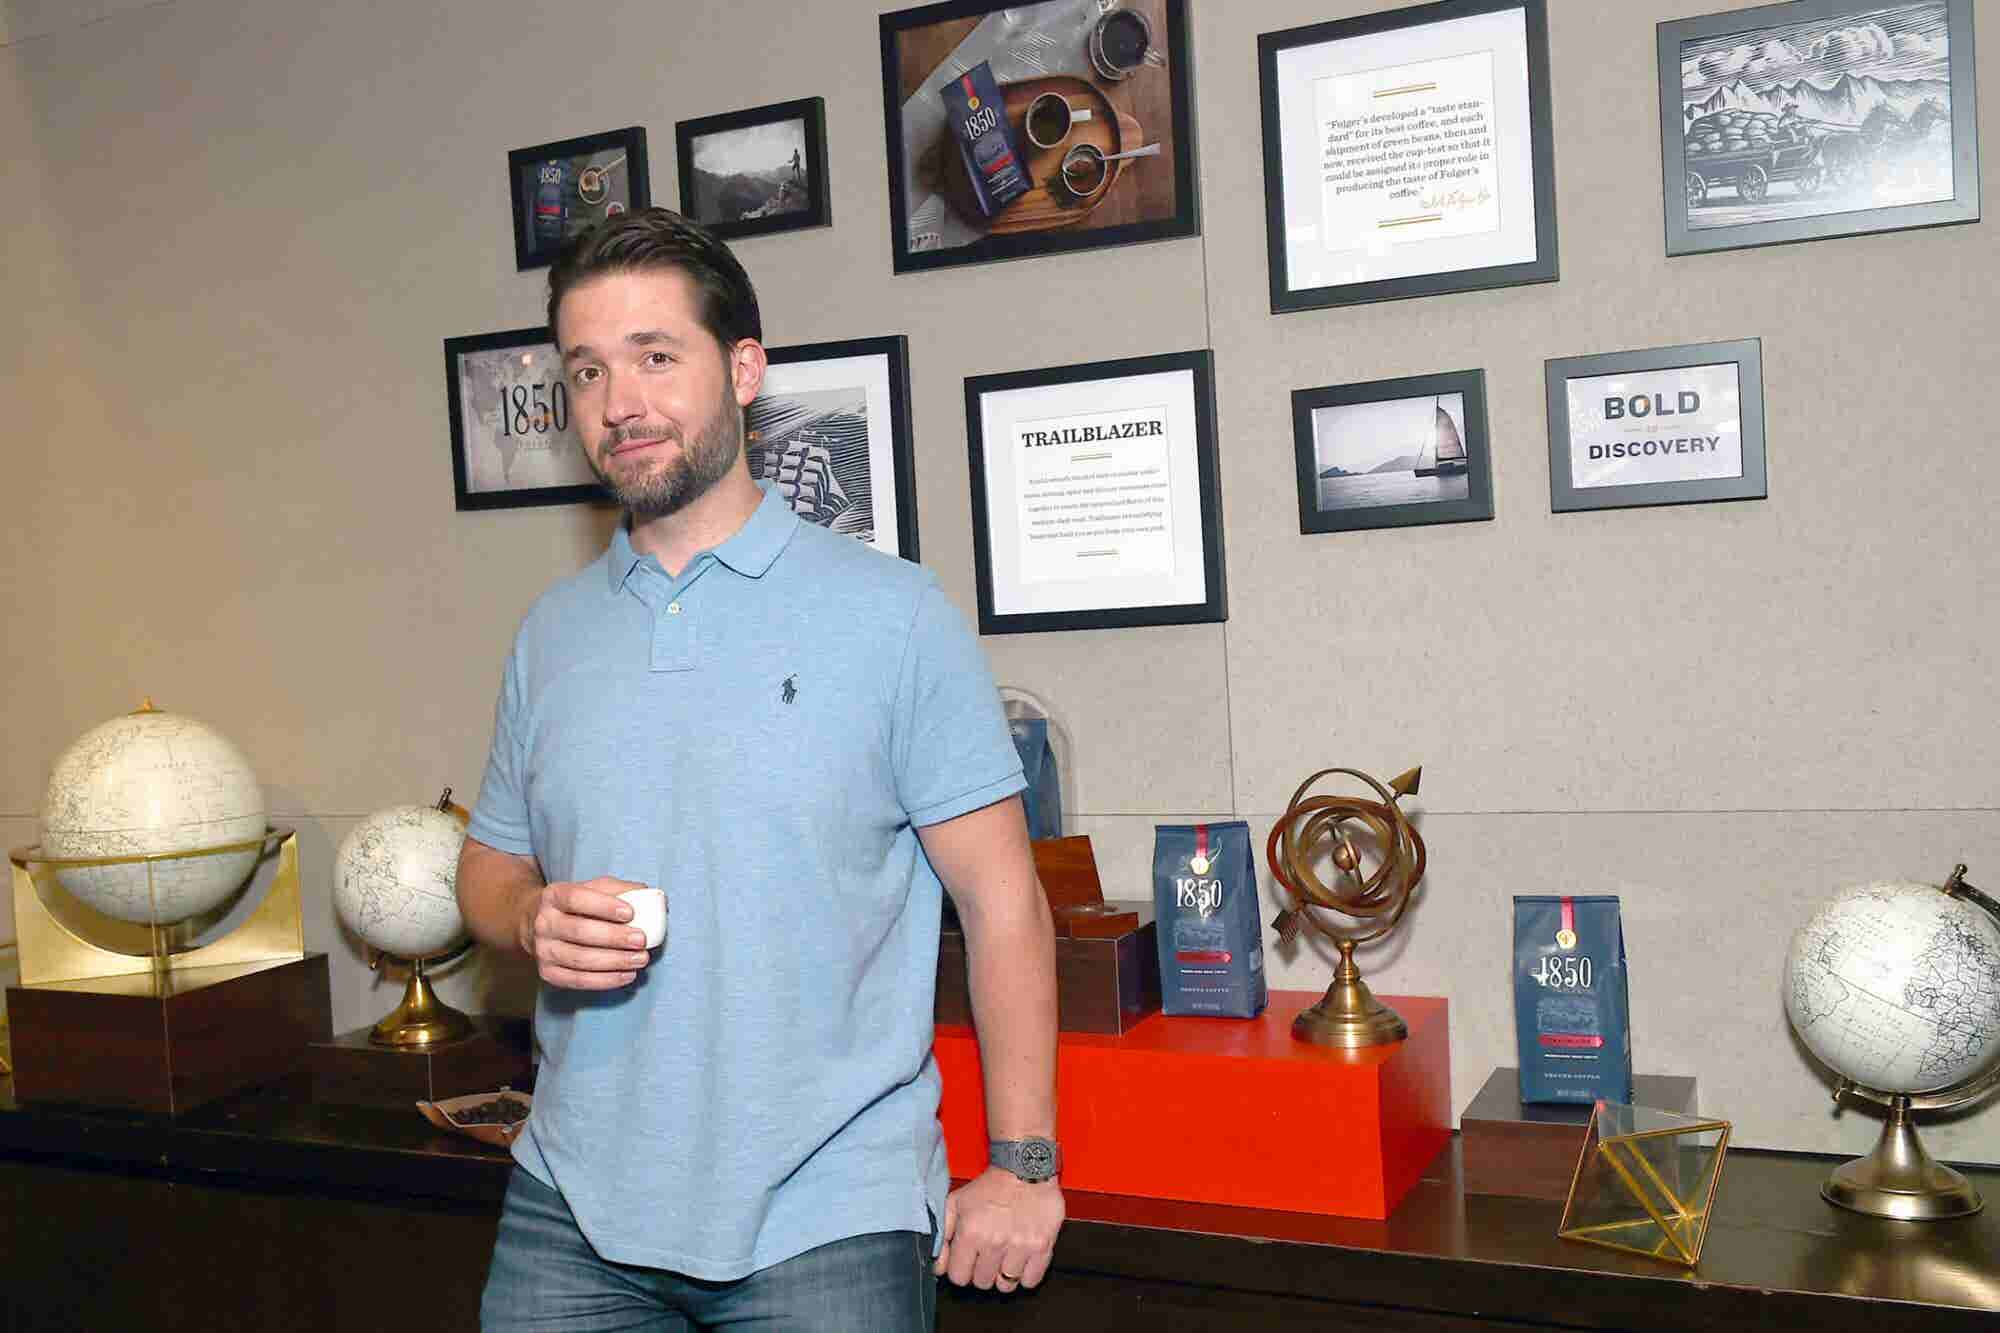 Reddit Co-Founder Alexis Ohanian Reveals Why You Should Rethink What It Means to Be a Great Mentor